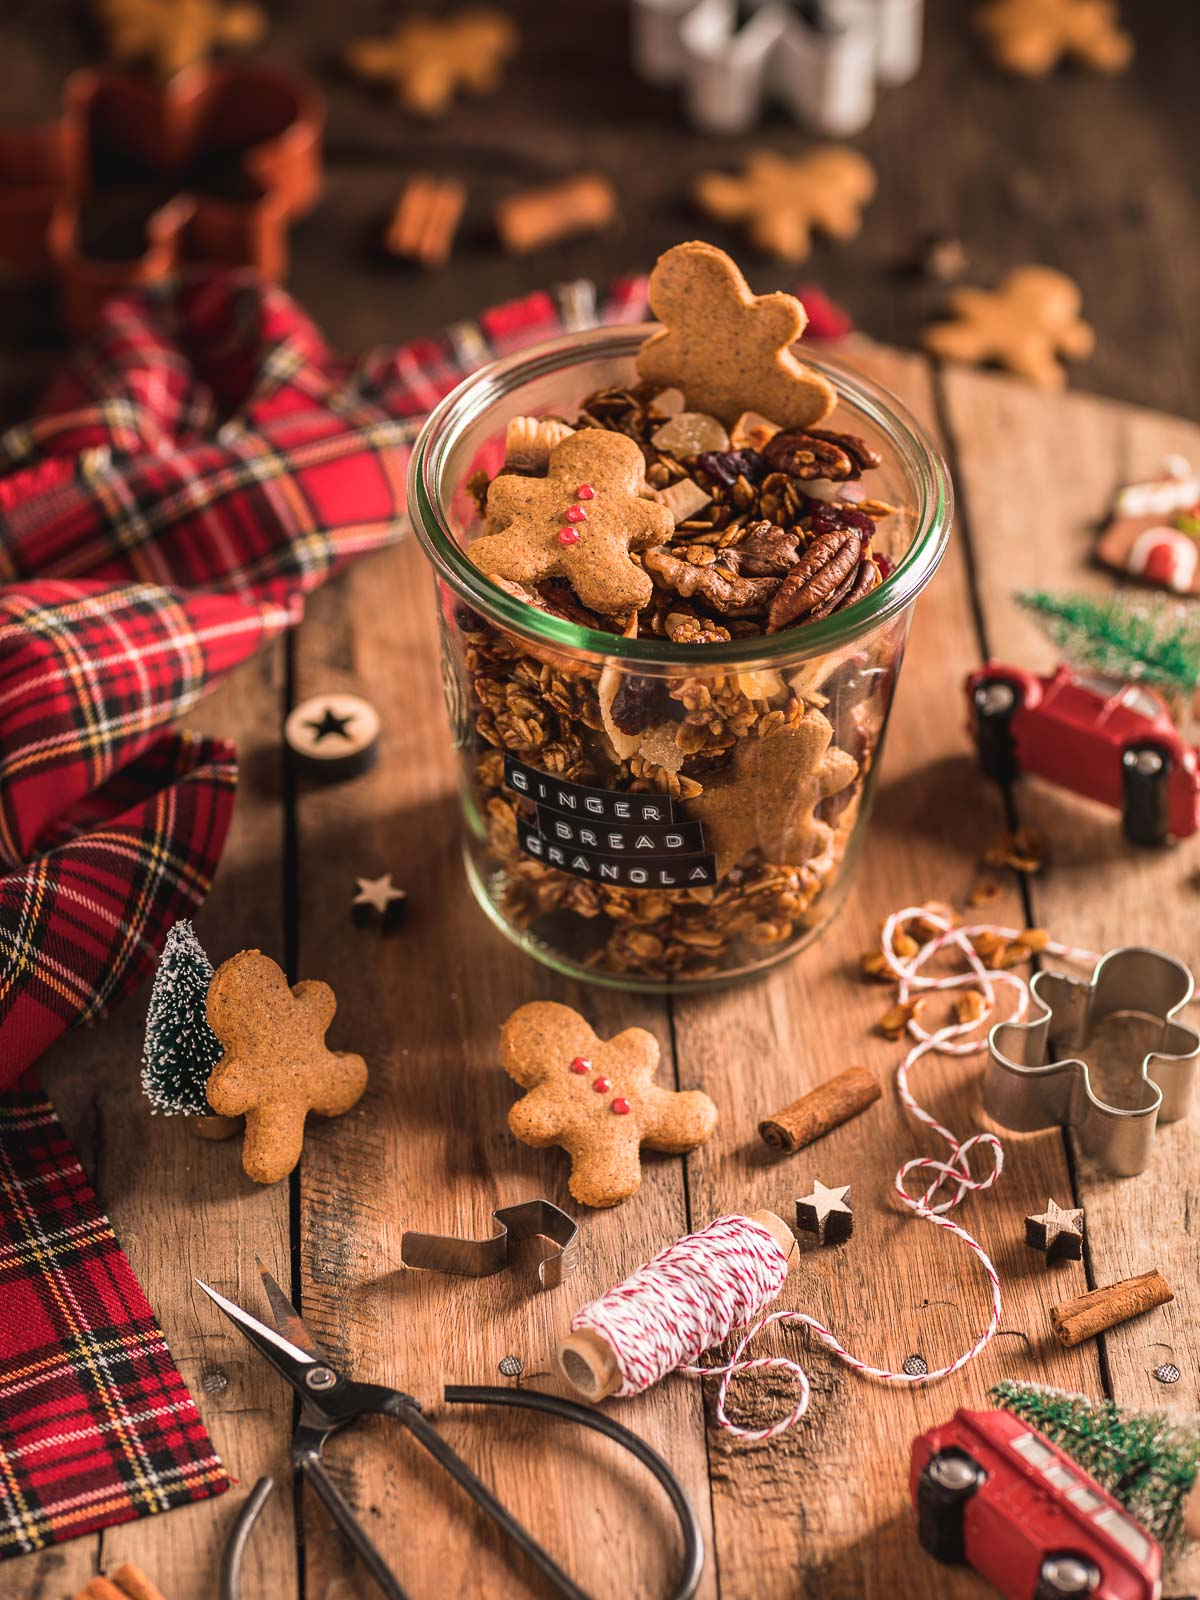 Gingerbread Granola Crispy sweet and spiced recipe perfect for holidays guests #vegan #glutenfree Ricetta granola pan di zenzero idea regalo di Natale vegan Christmas gift idea